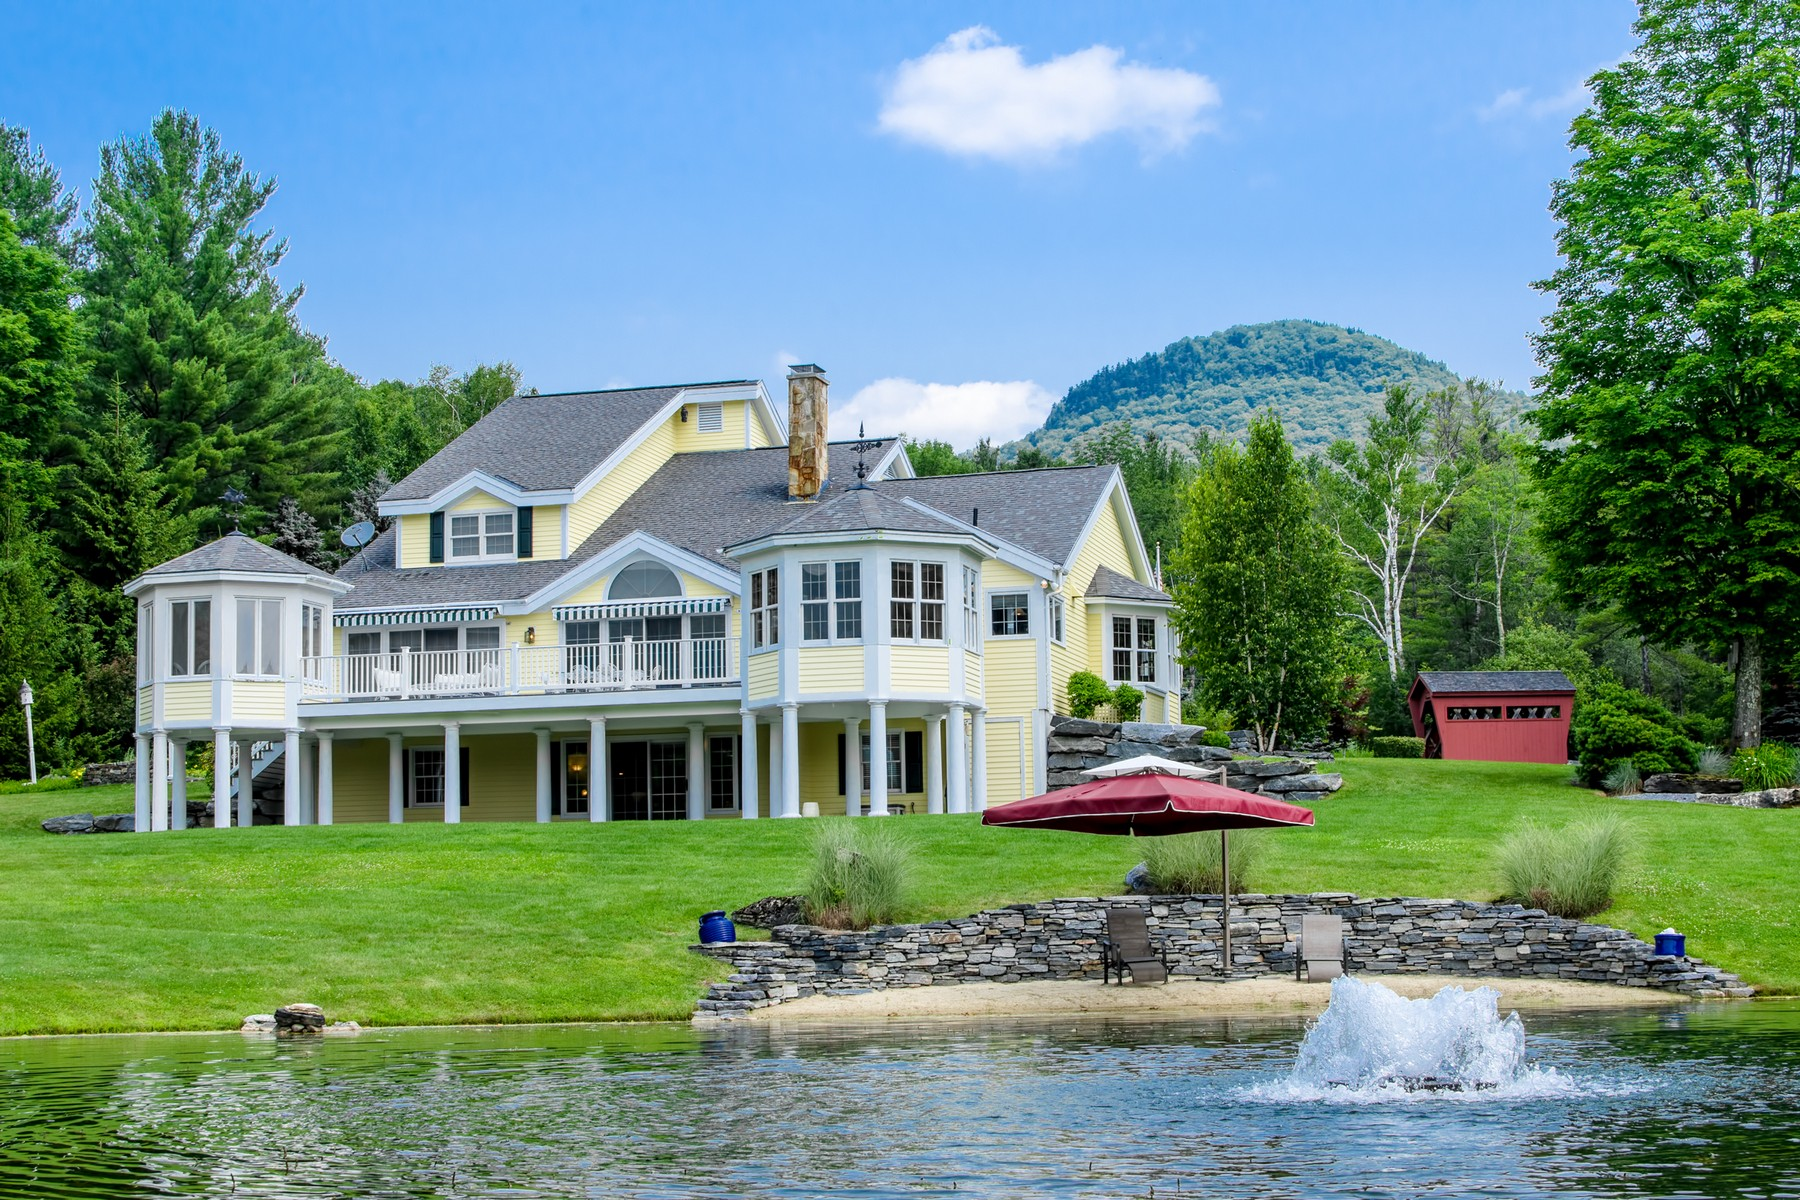 Single Family Home for Sale at 390 Owls Head Hill Lane, Dorset 390 Owls Head Hill Ln Dorset, Vermont, 05251 United States